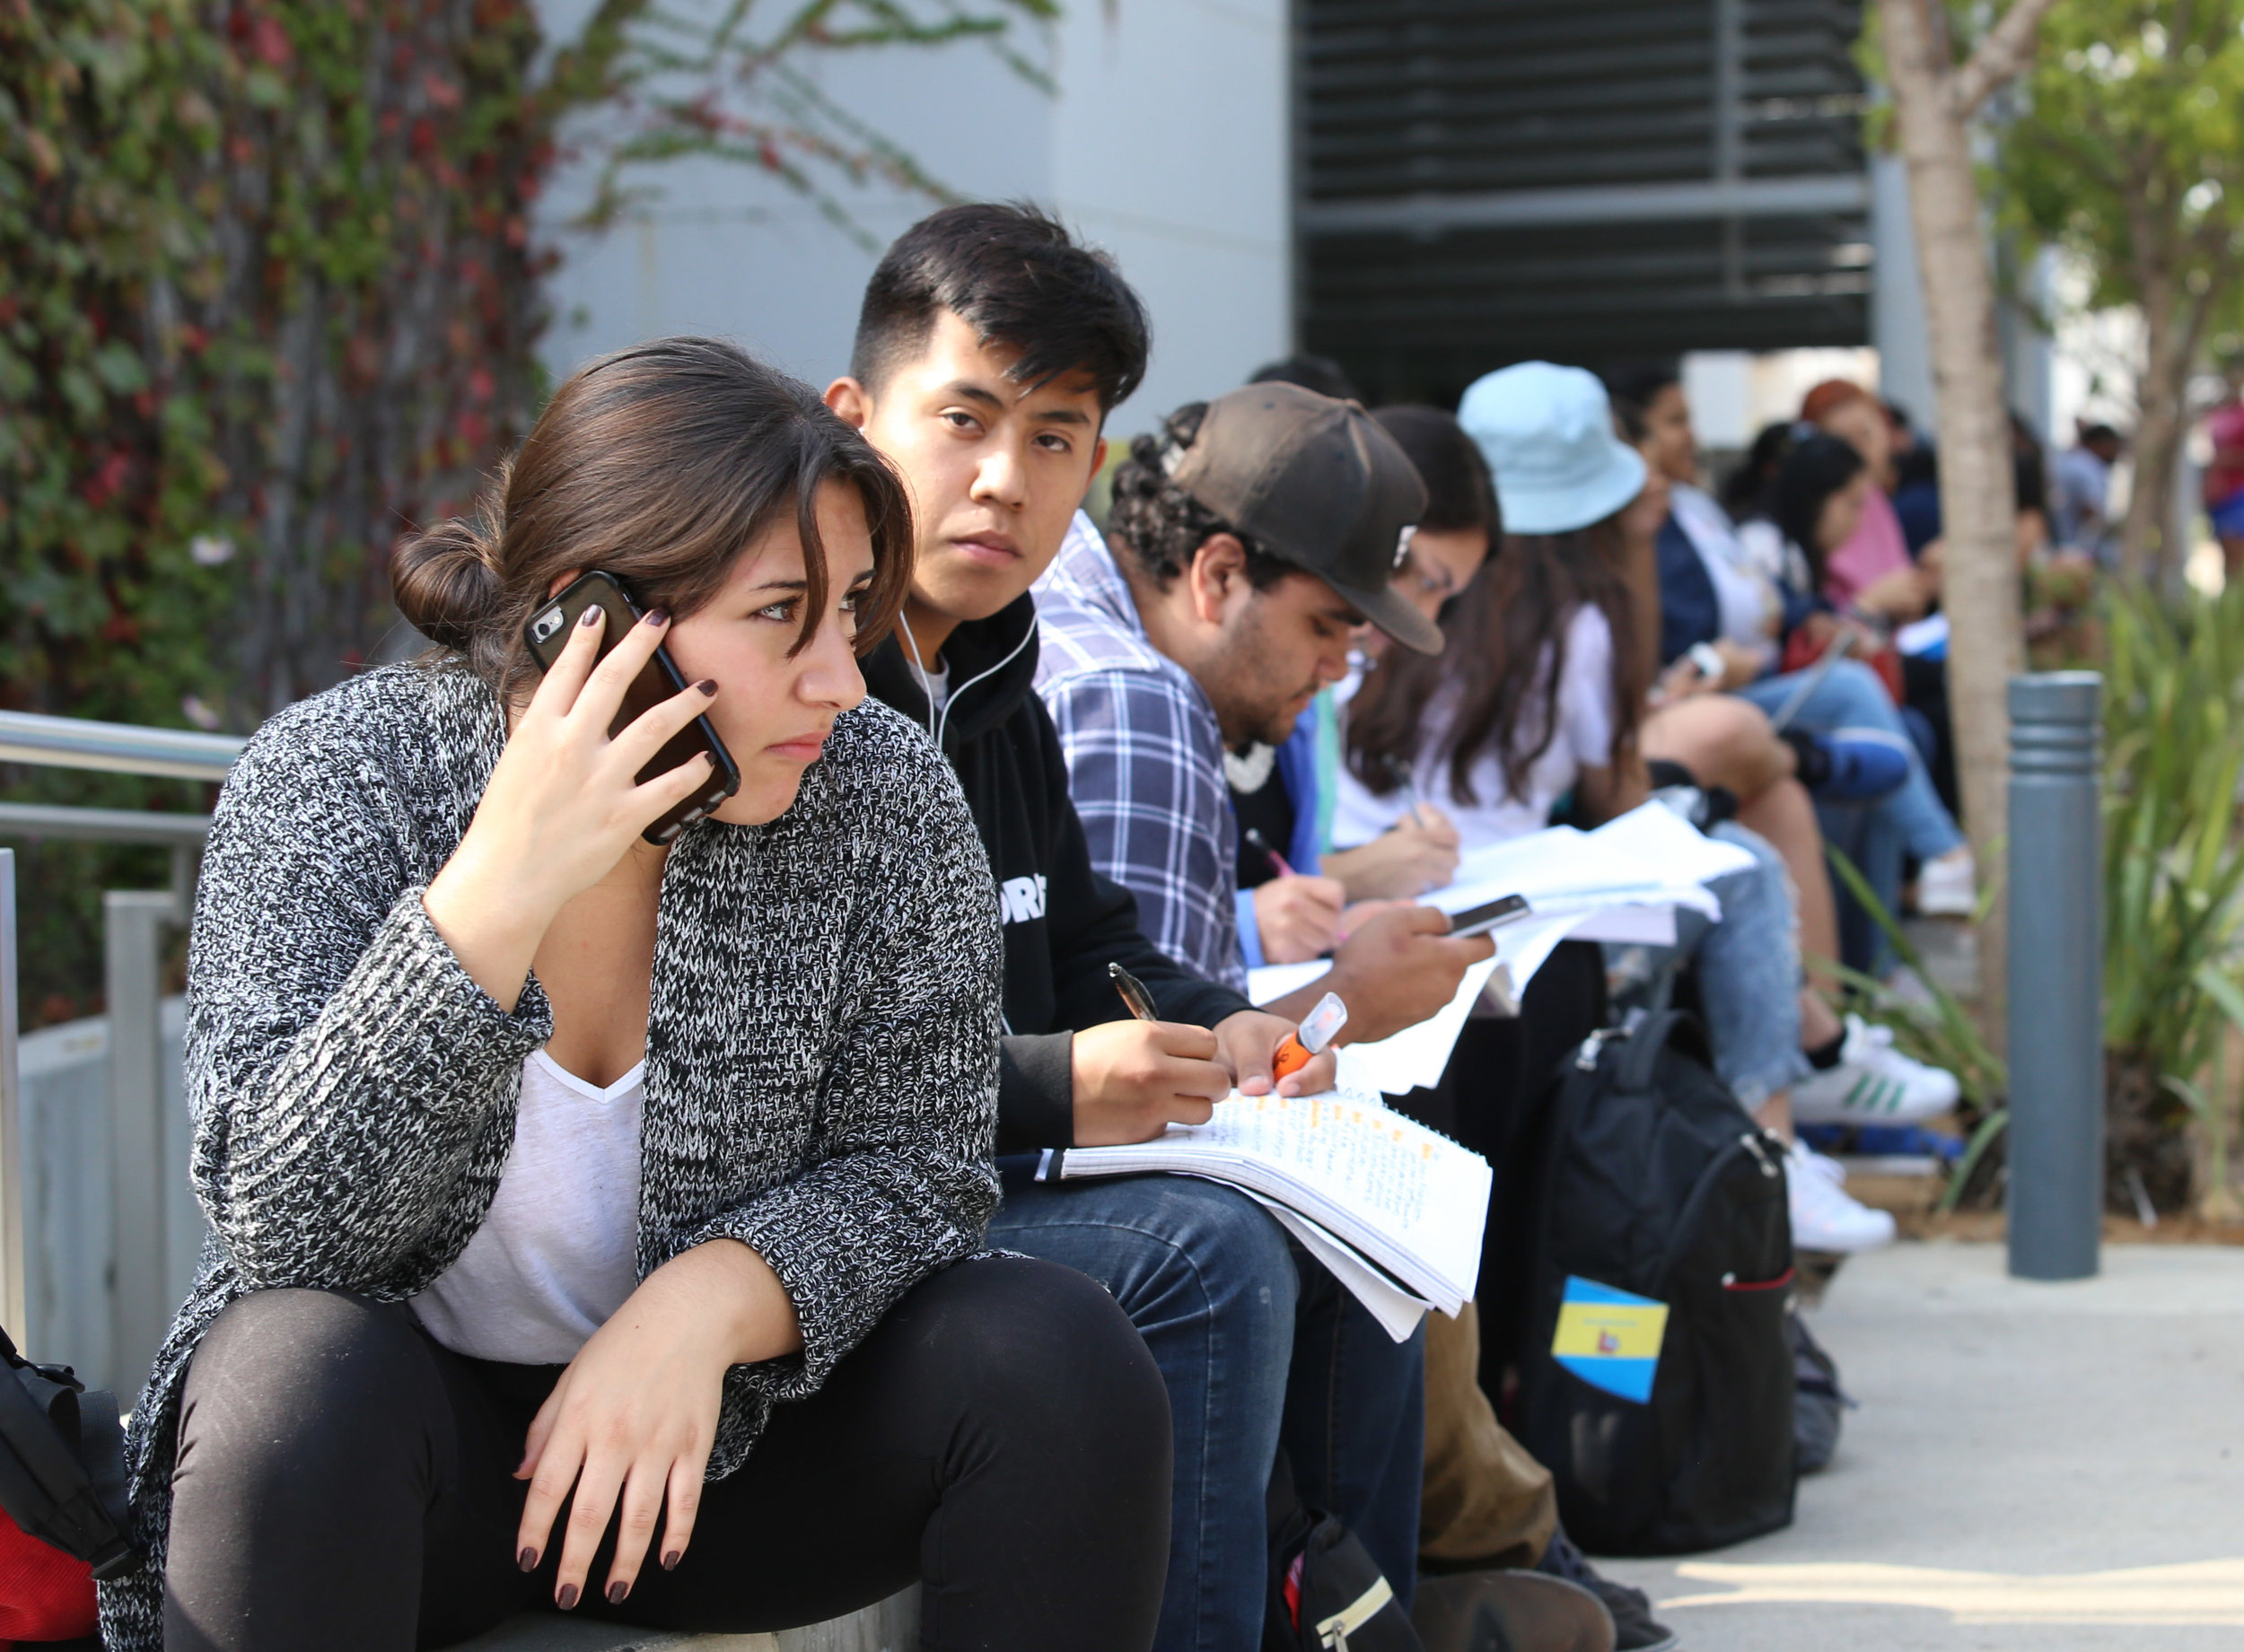 Students wait outside of Santa Monica College's Main Campus Library doing school work after being evacuated for the Great California Shakedown drill in Santa Monica, Calif on Thursday, October 19th 2017. (Photo by: Thane Fernandes)